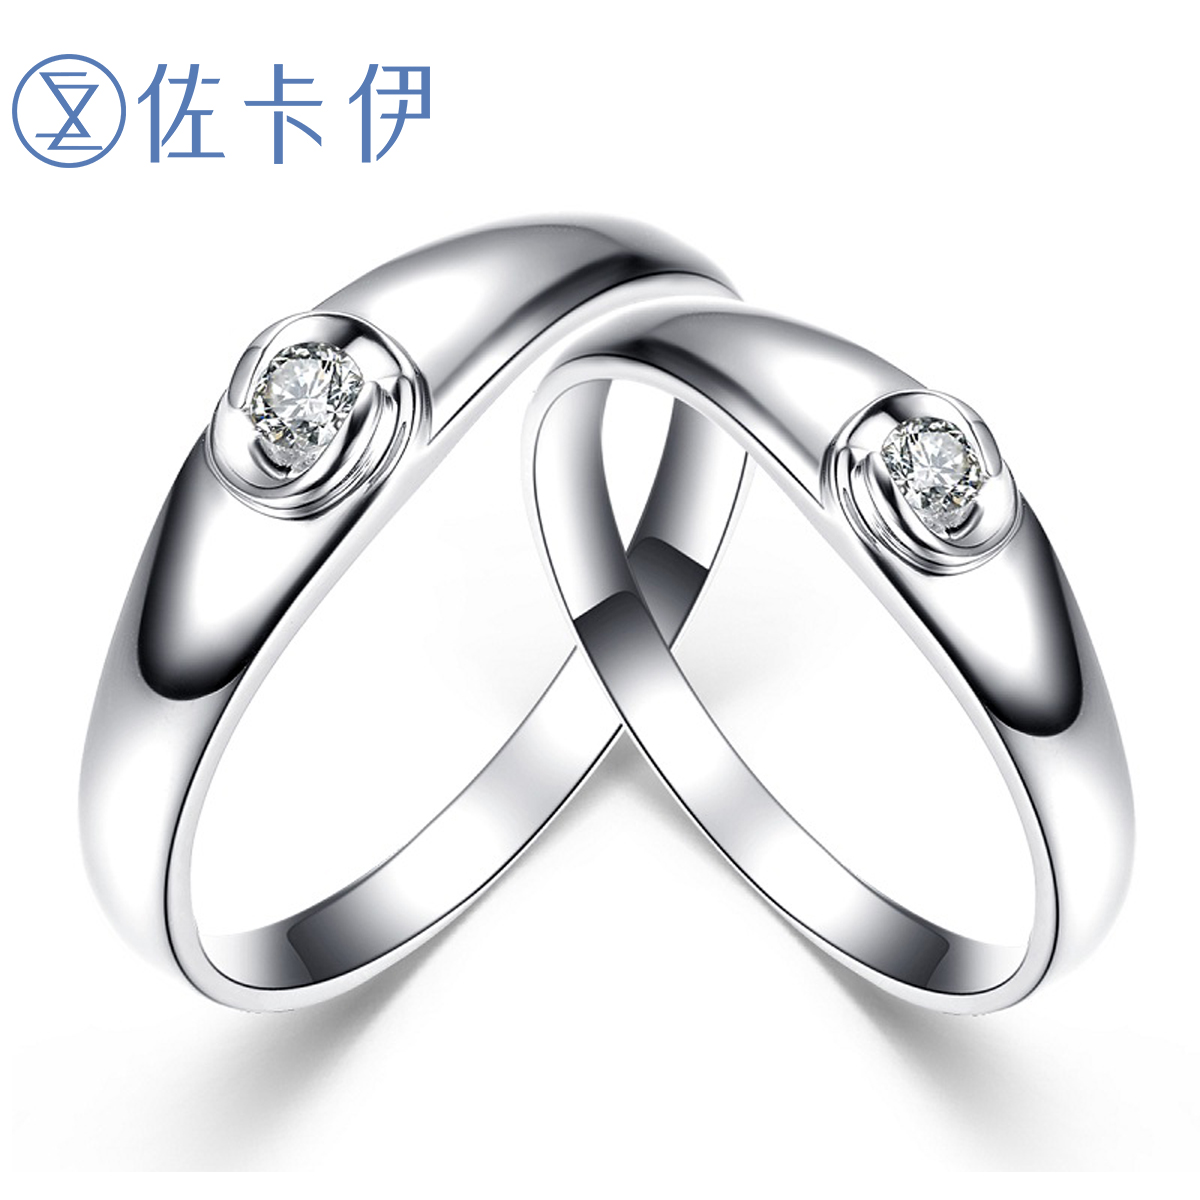 Zakaly gold couple rings nanjie nvjie diamond wedding ring diamond ring jewelry couple paragraph counter